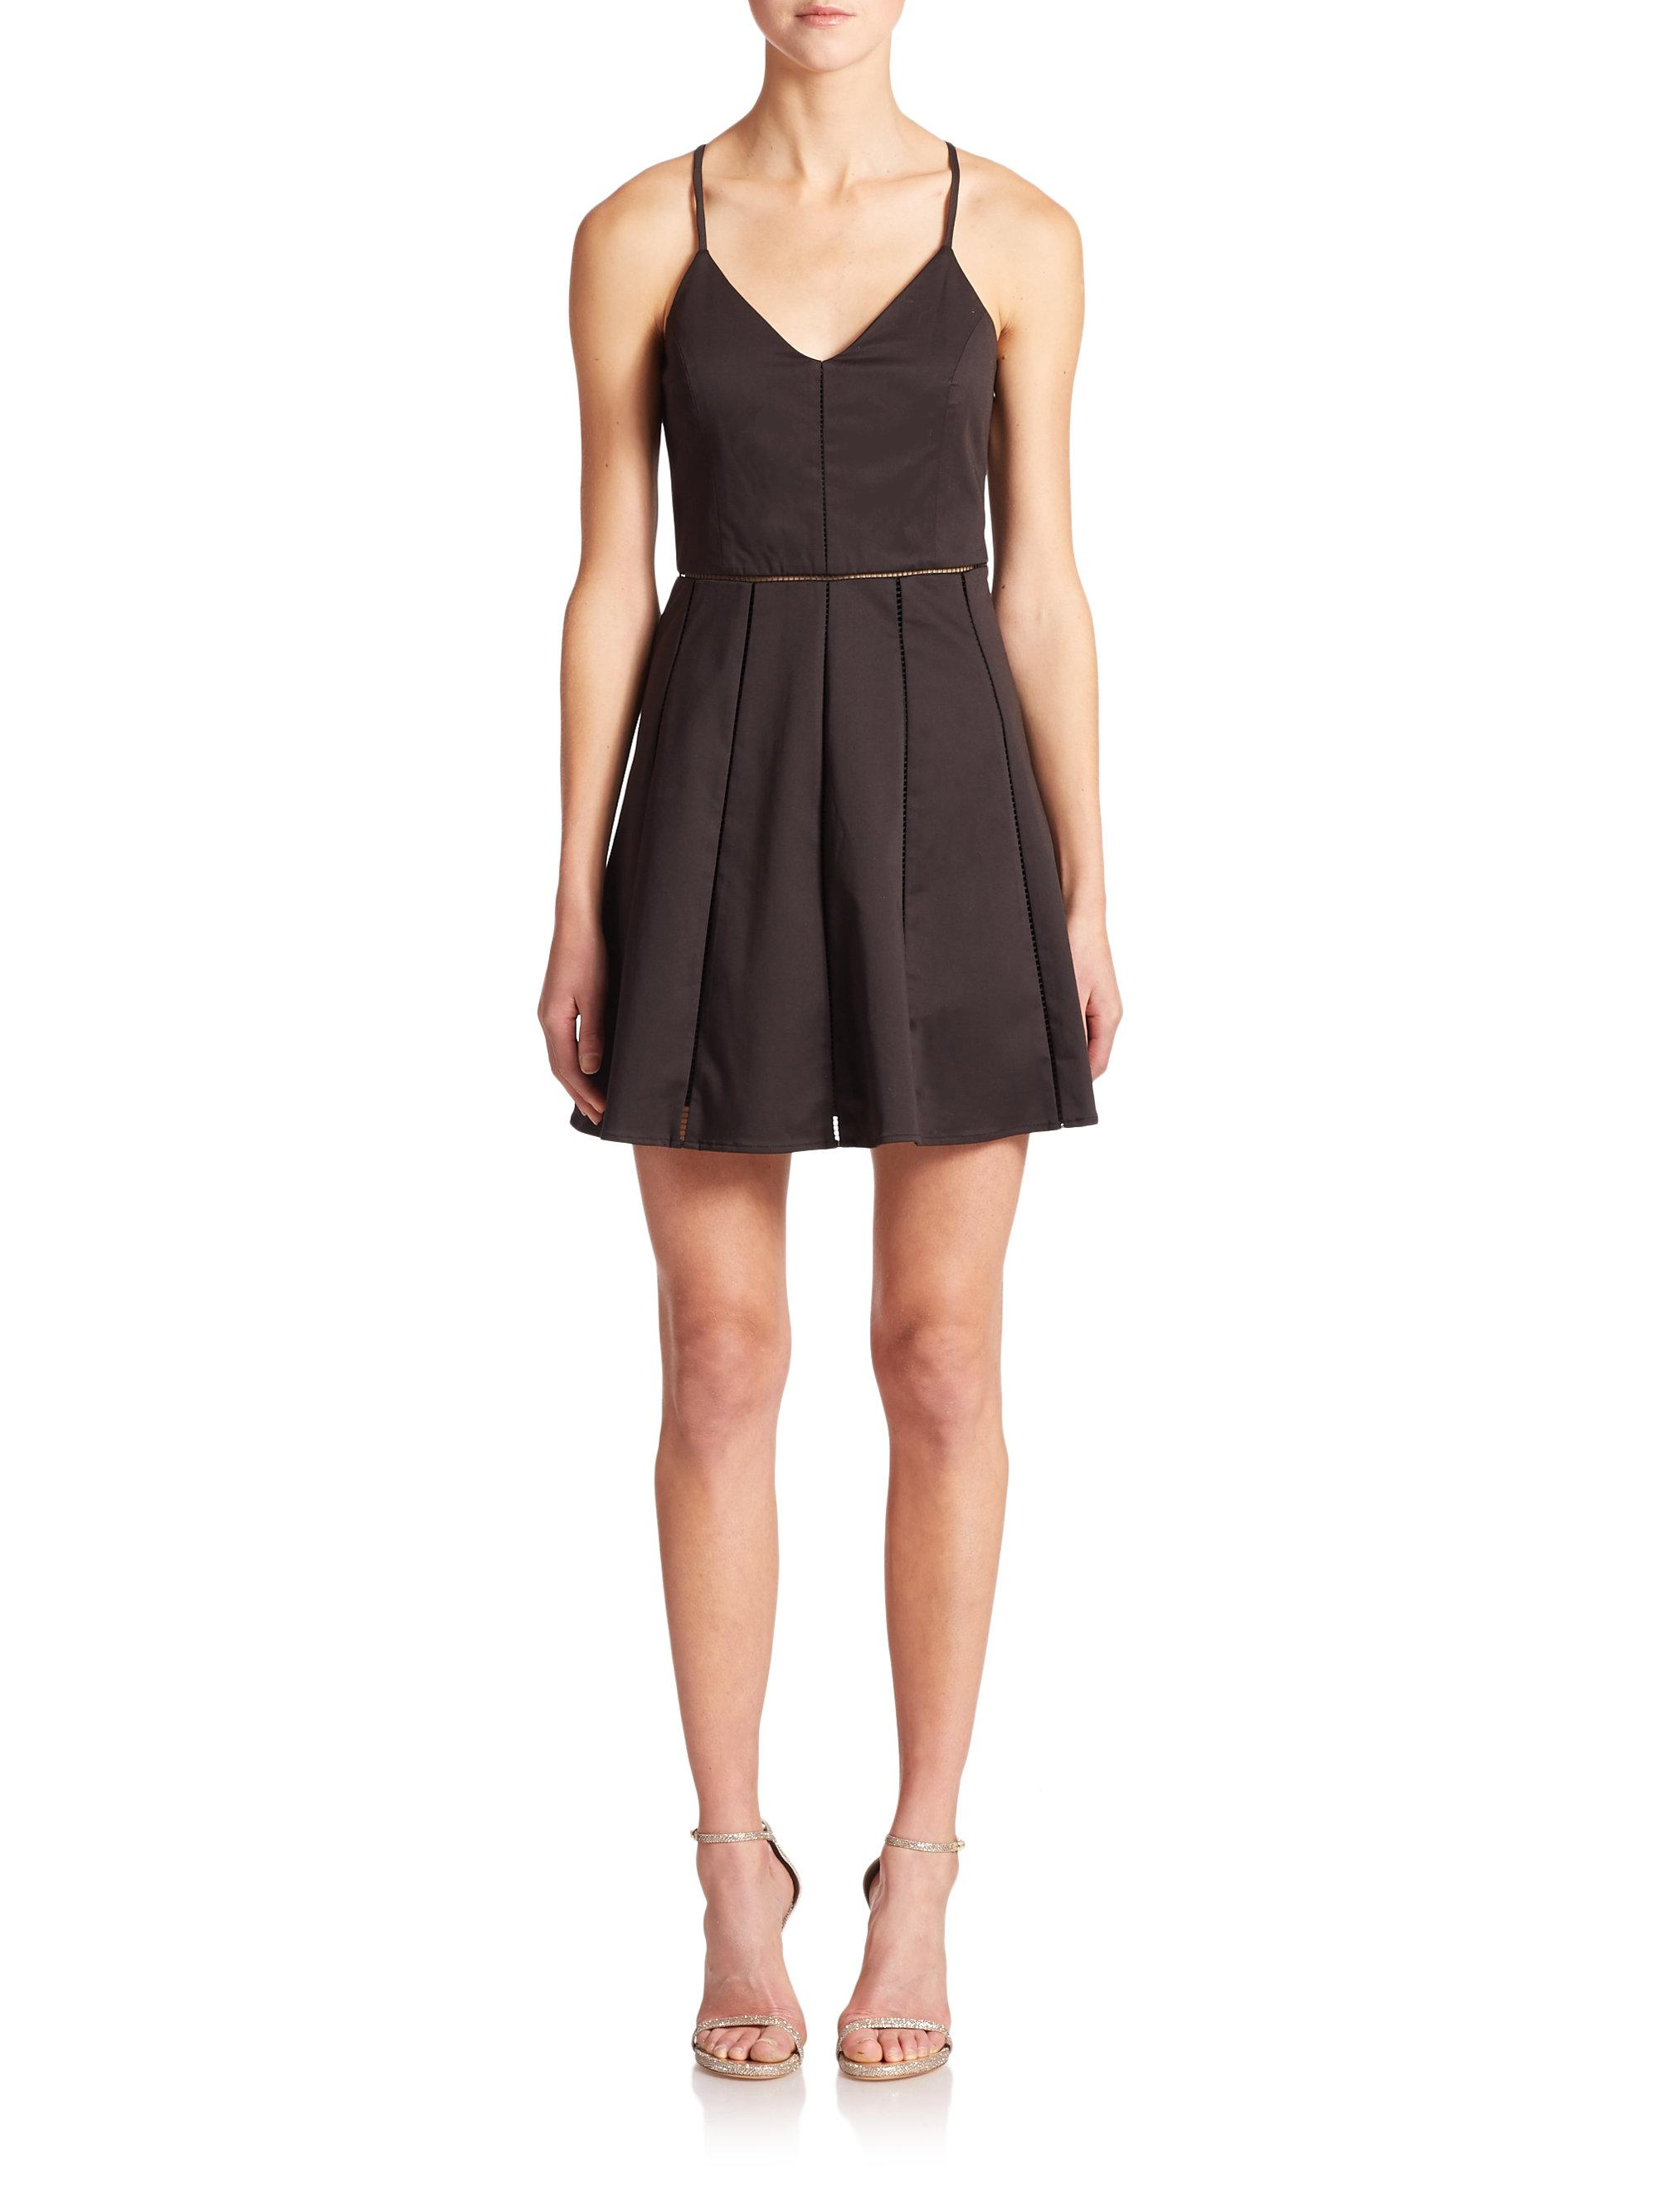 Parker Jacquard A-Line Dress w/ Tags High Quality Cheap Online Outlet Footlocker Outlet Clearance Store xR09vfIYh7